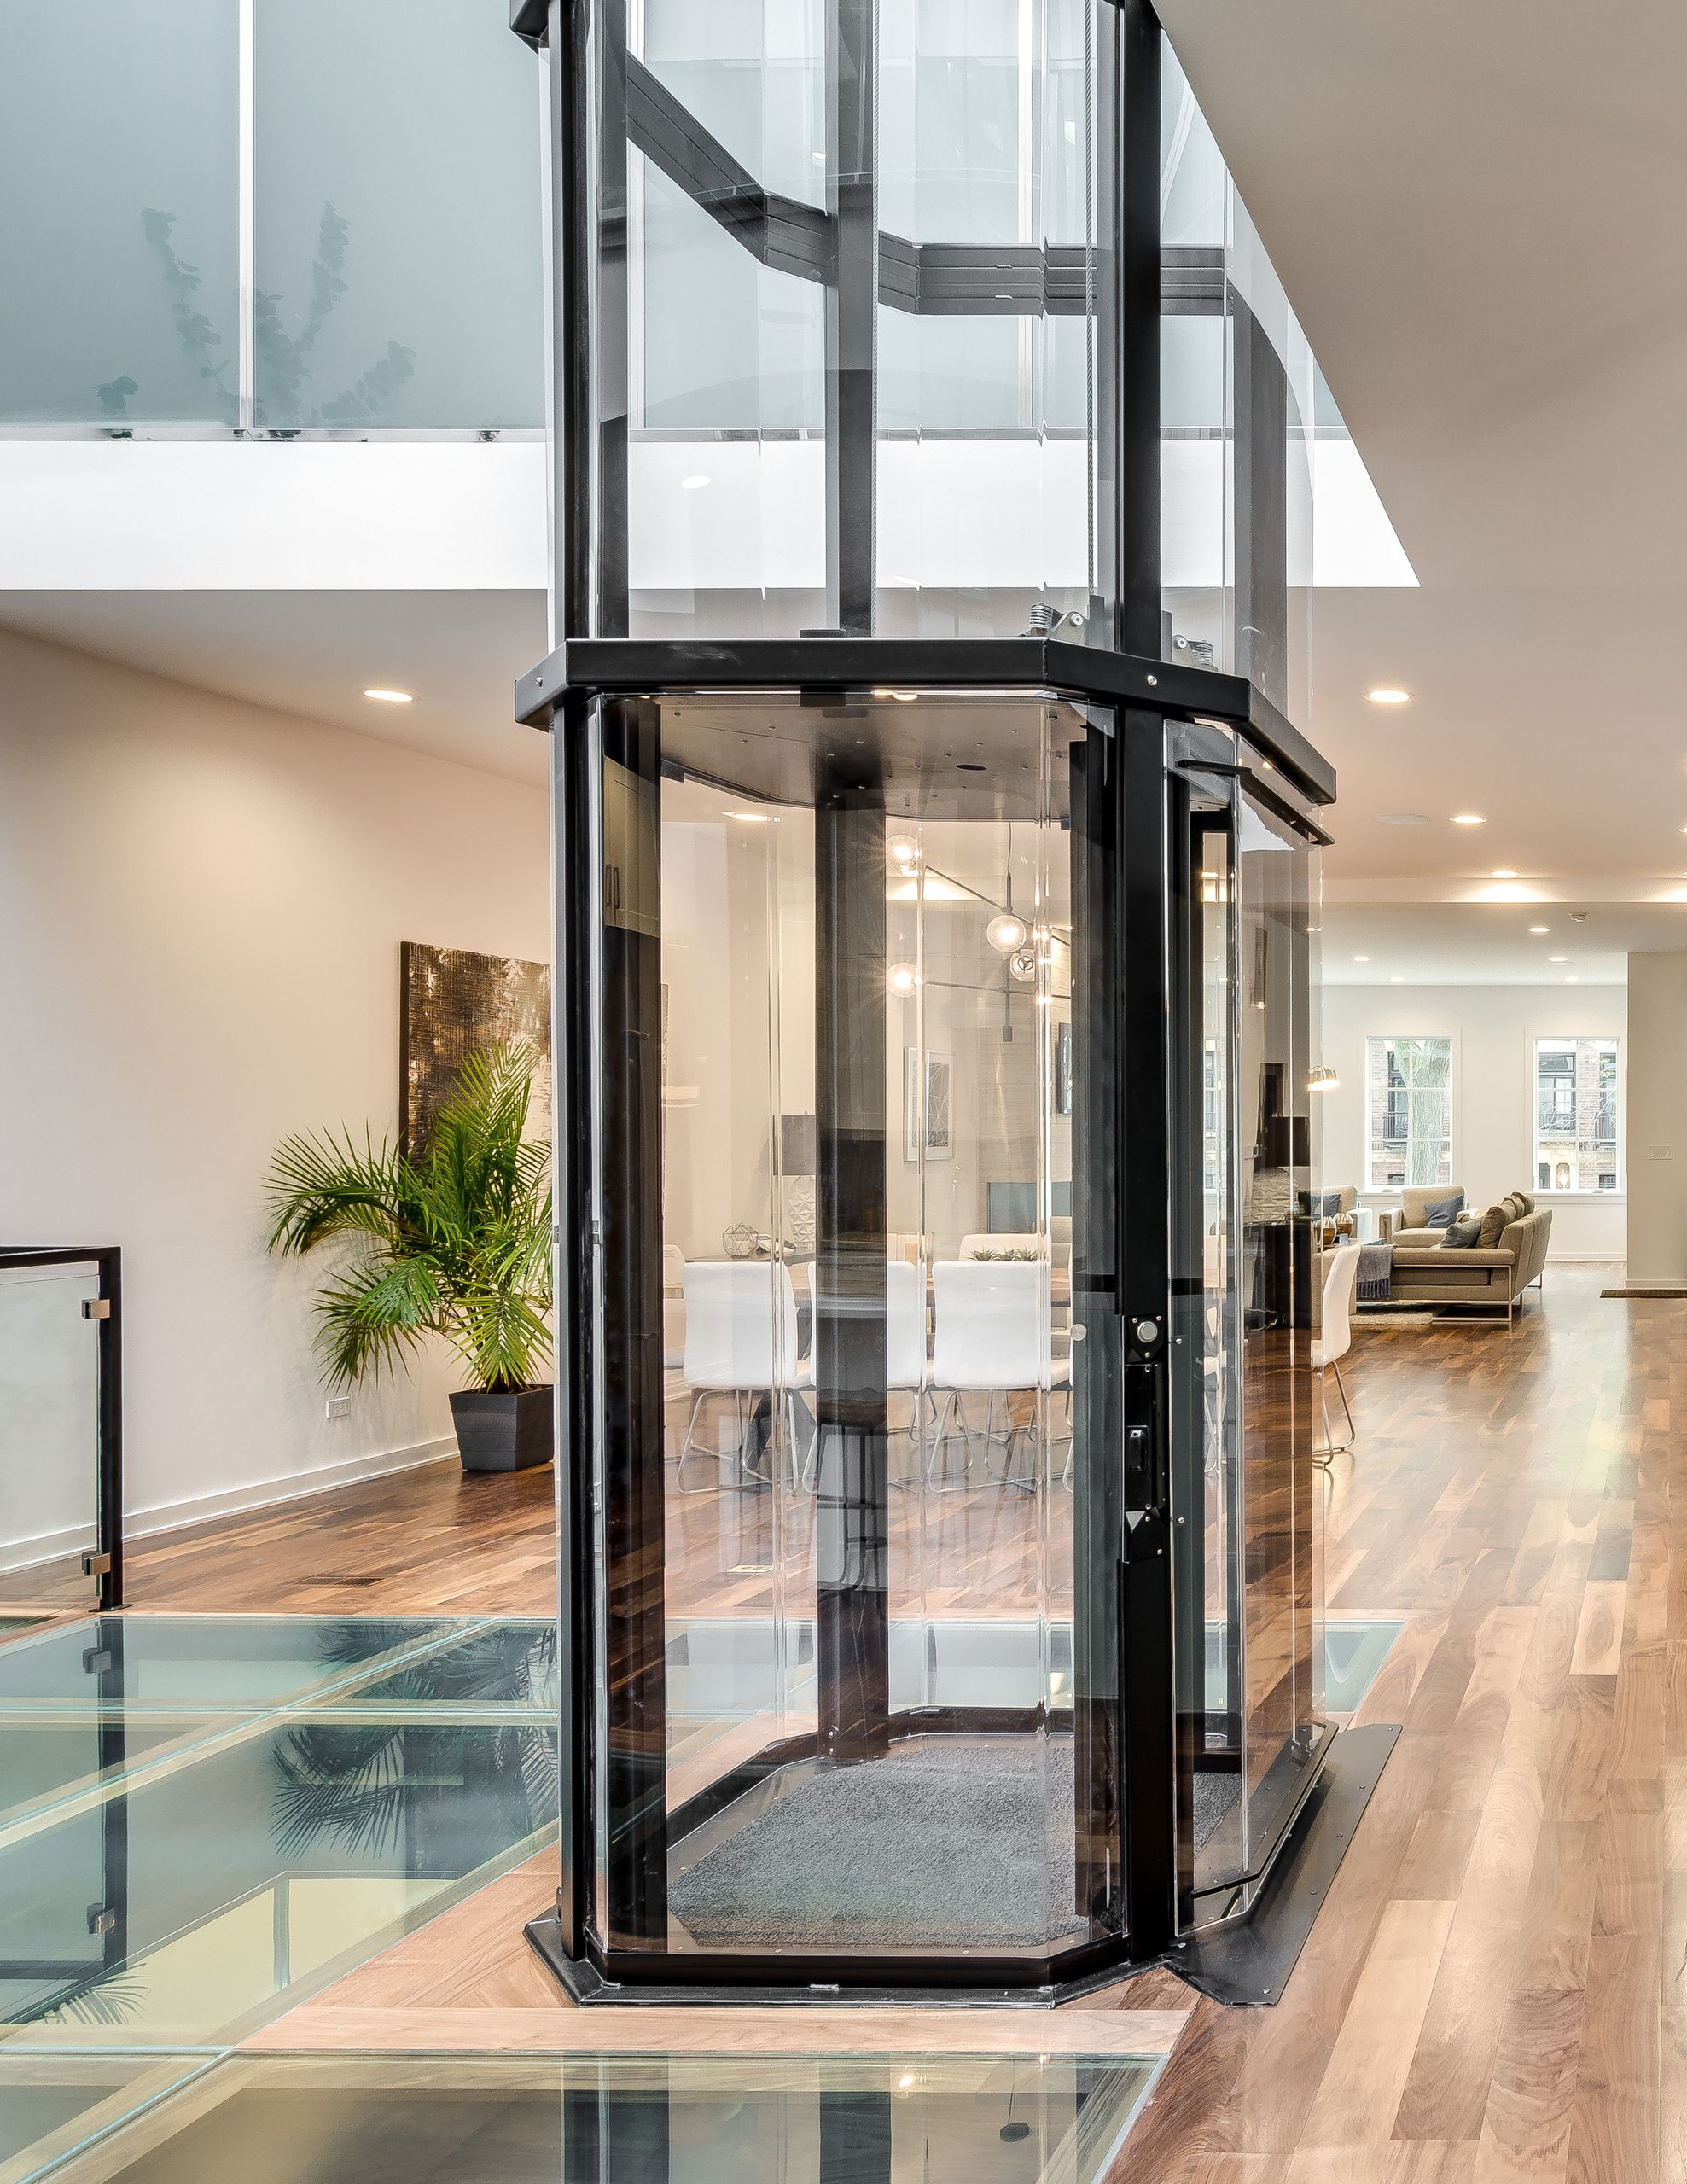 Narrow Row Home With Vuelift Octagonal Cab View Glass Elevator